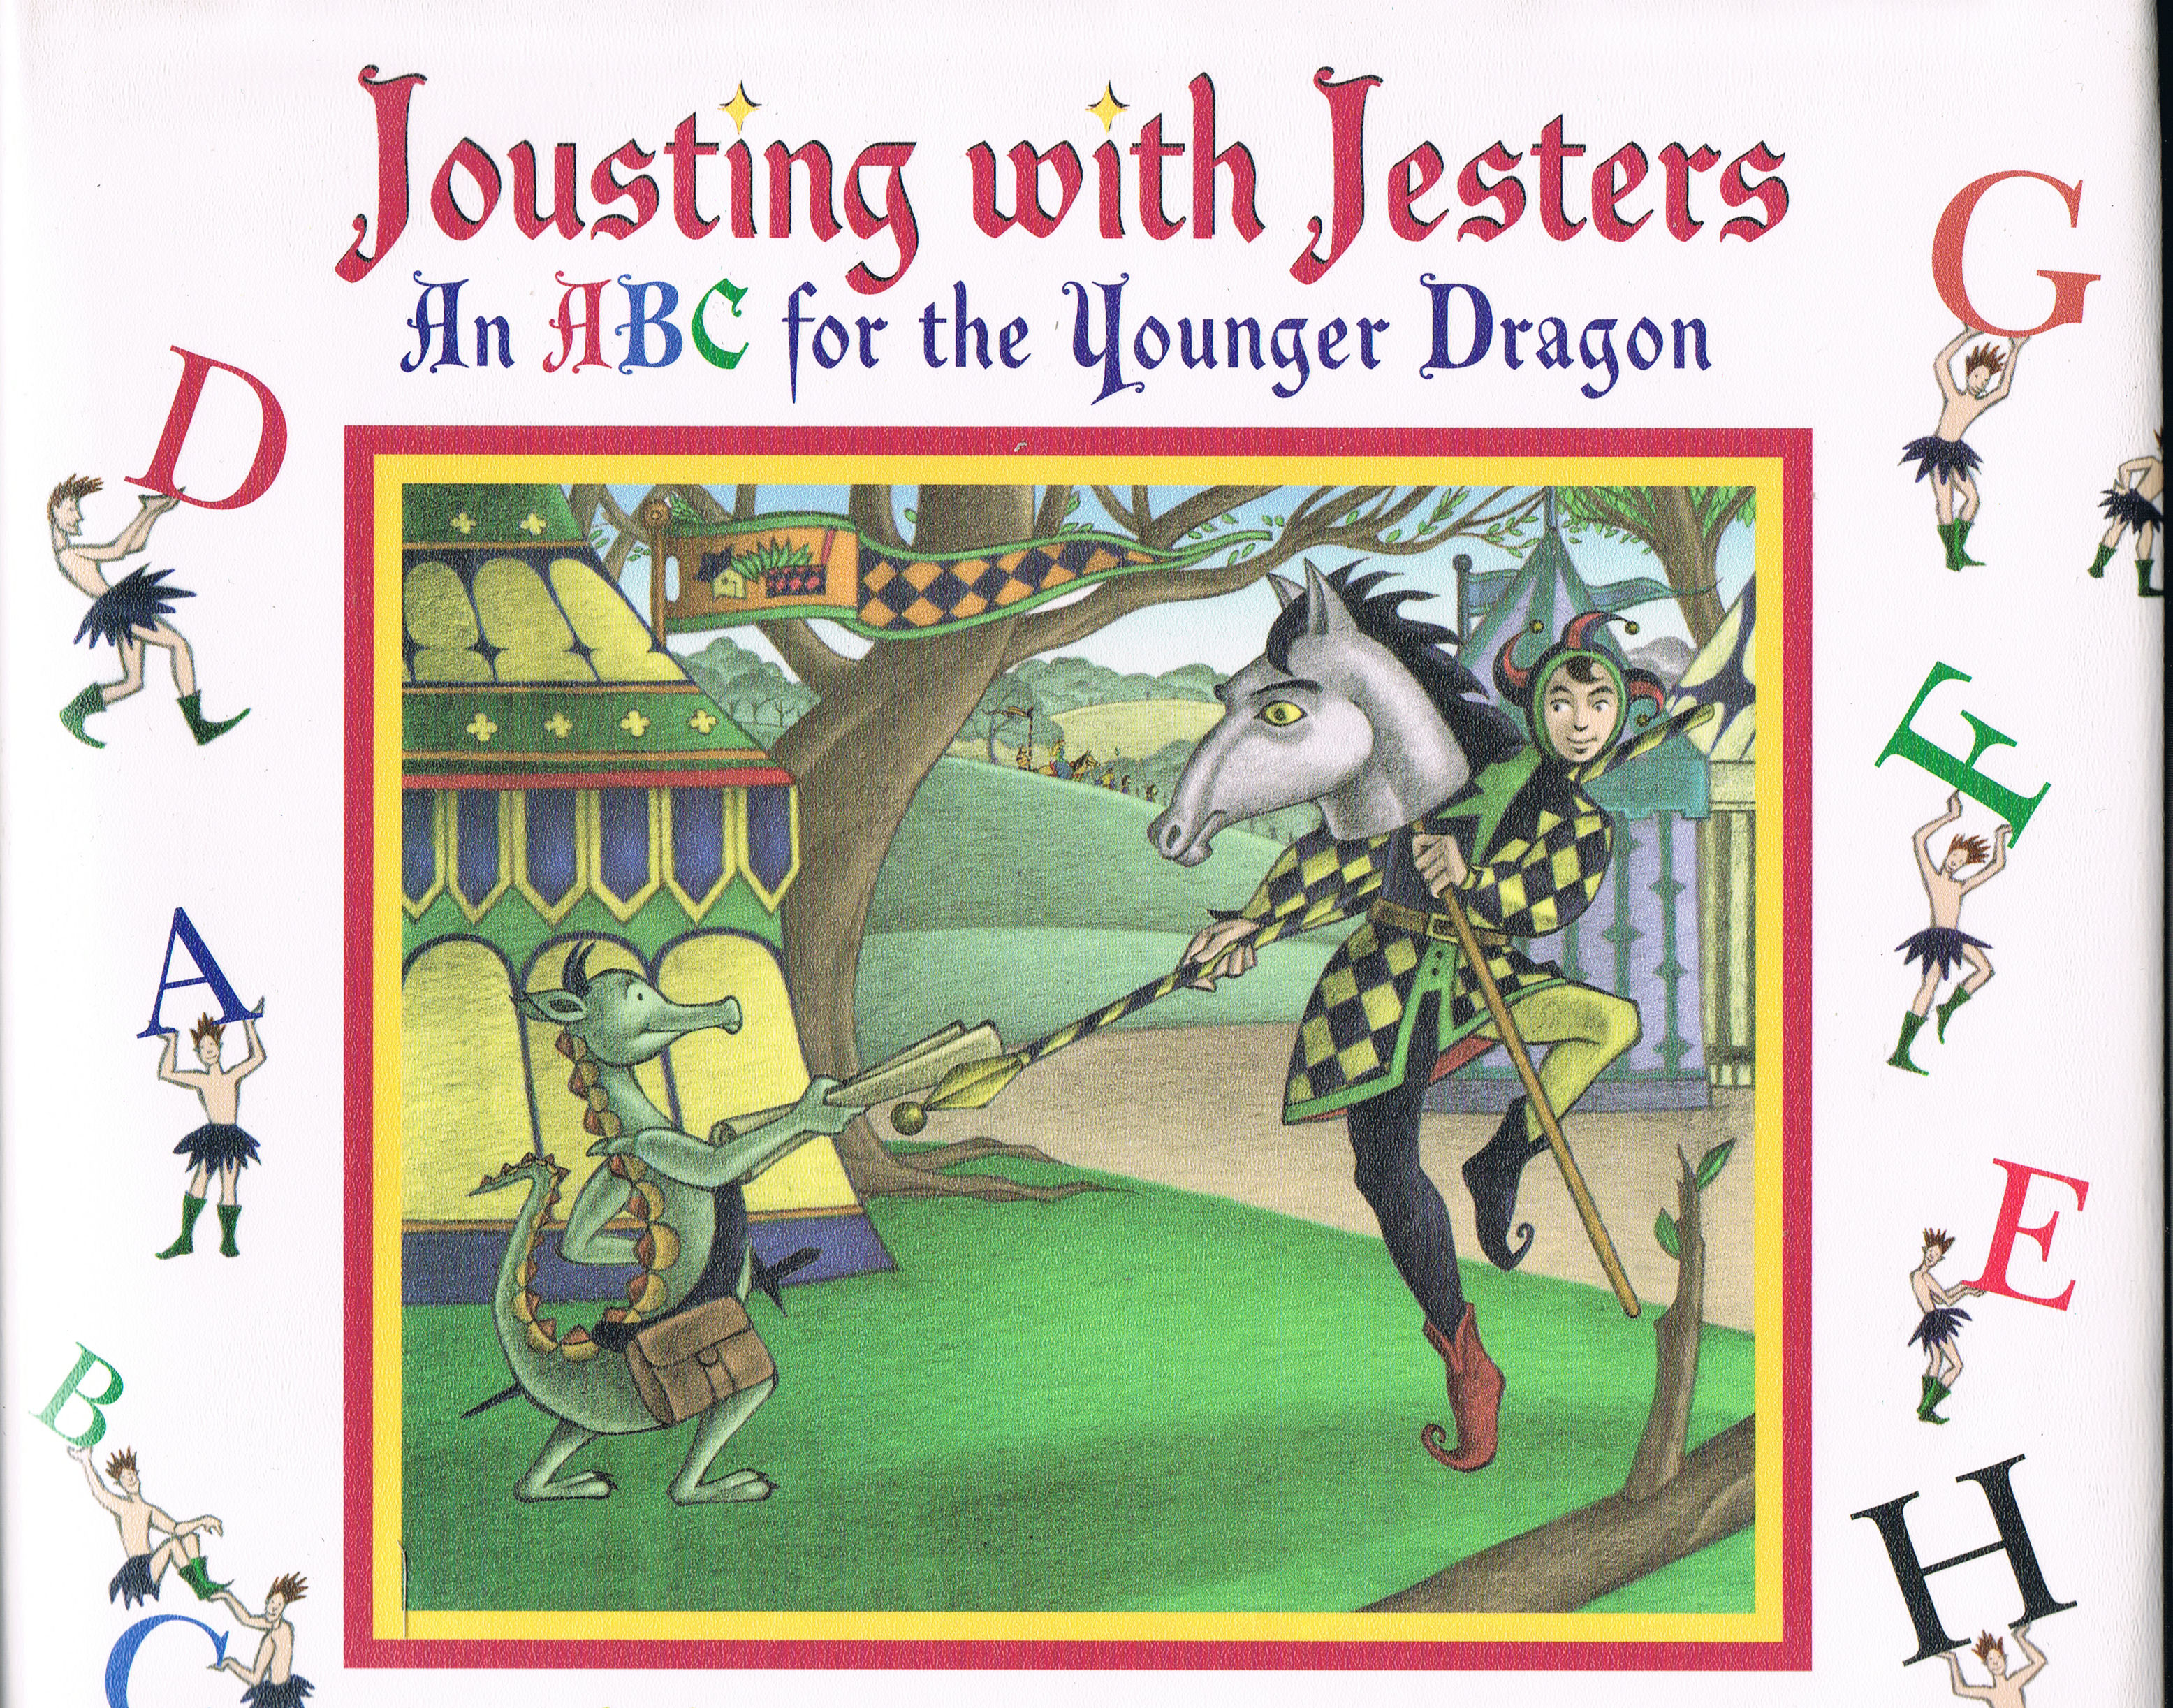 Image for Jousting with Jesters: An ABC for the Younger Dragon